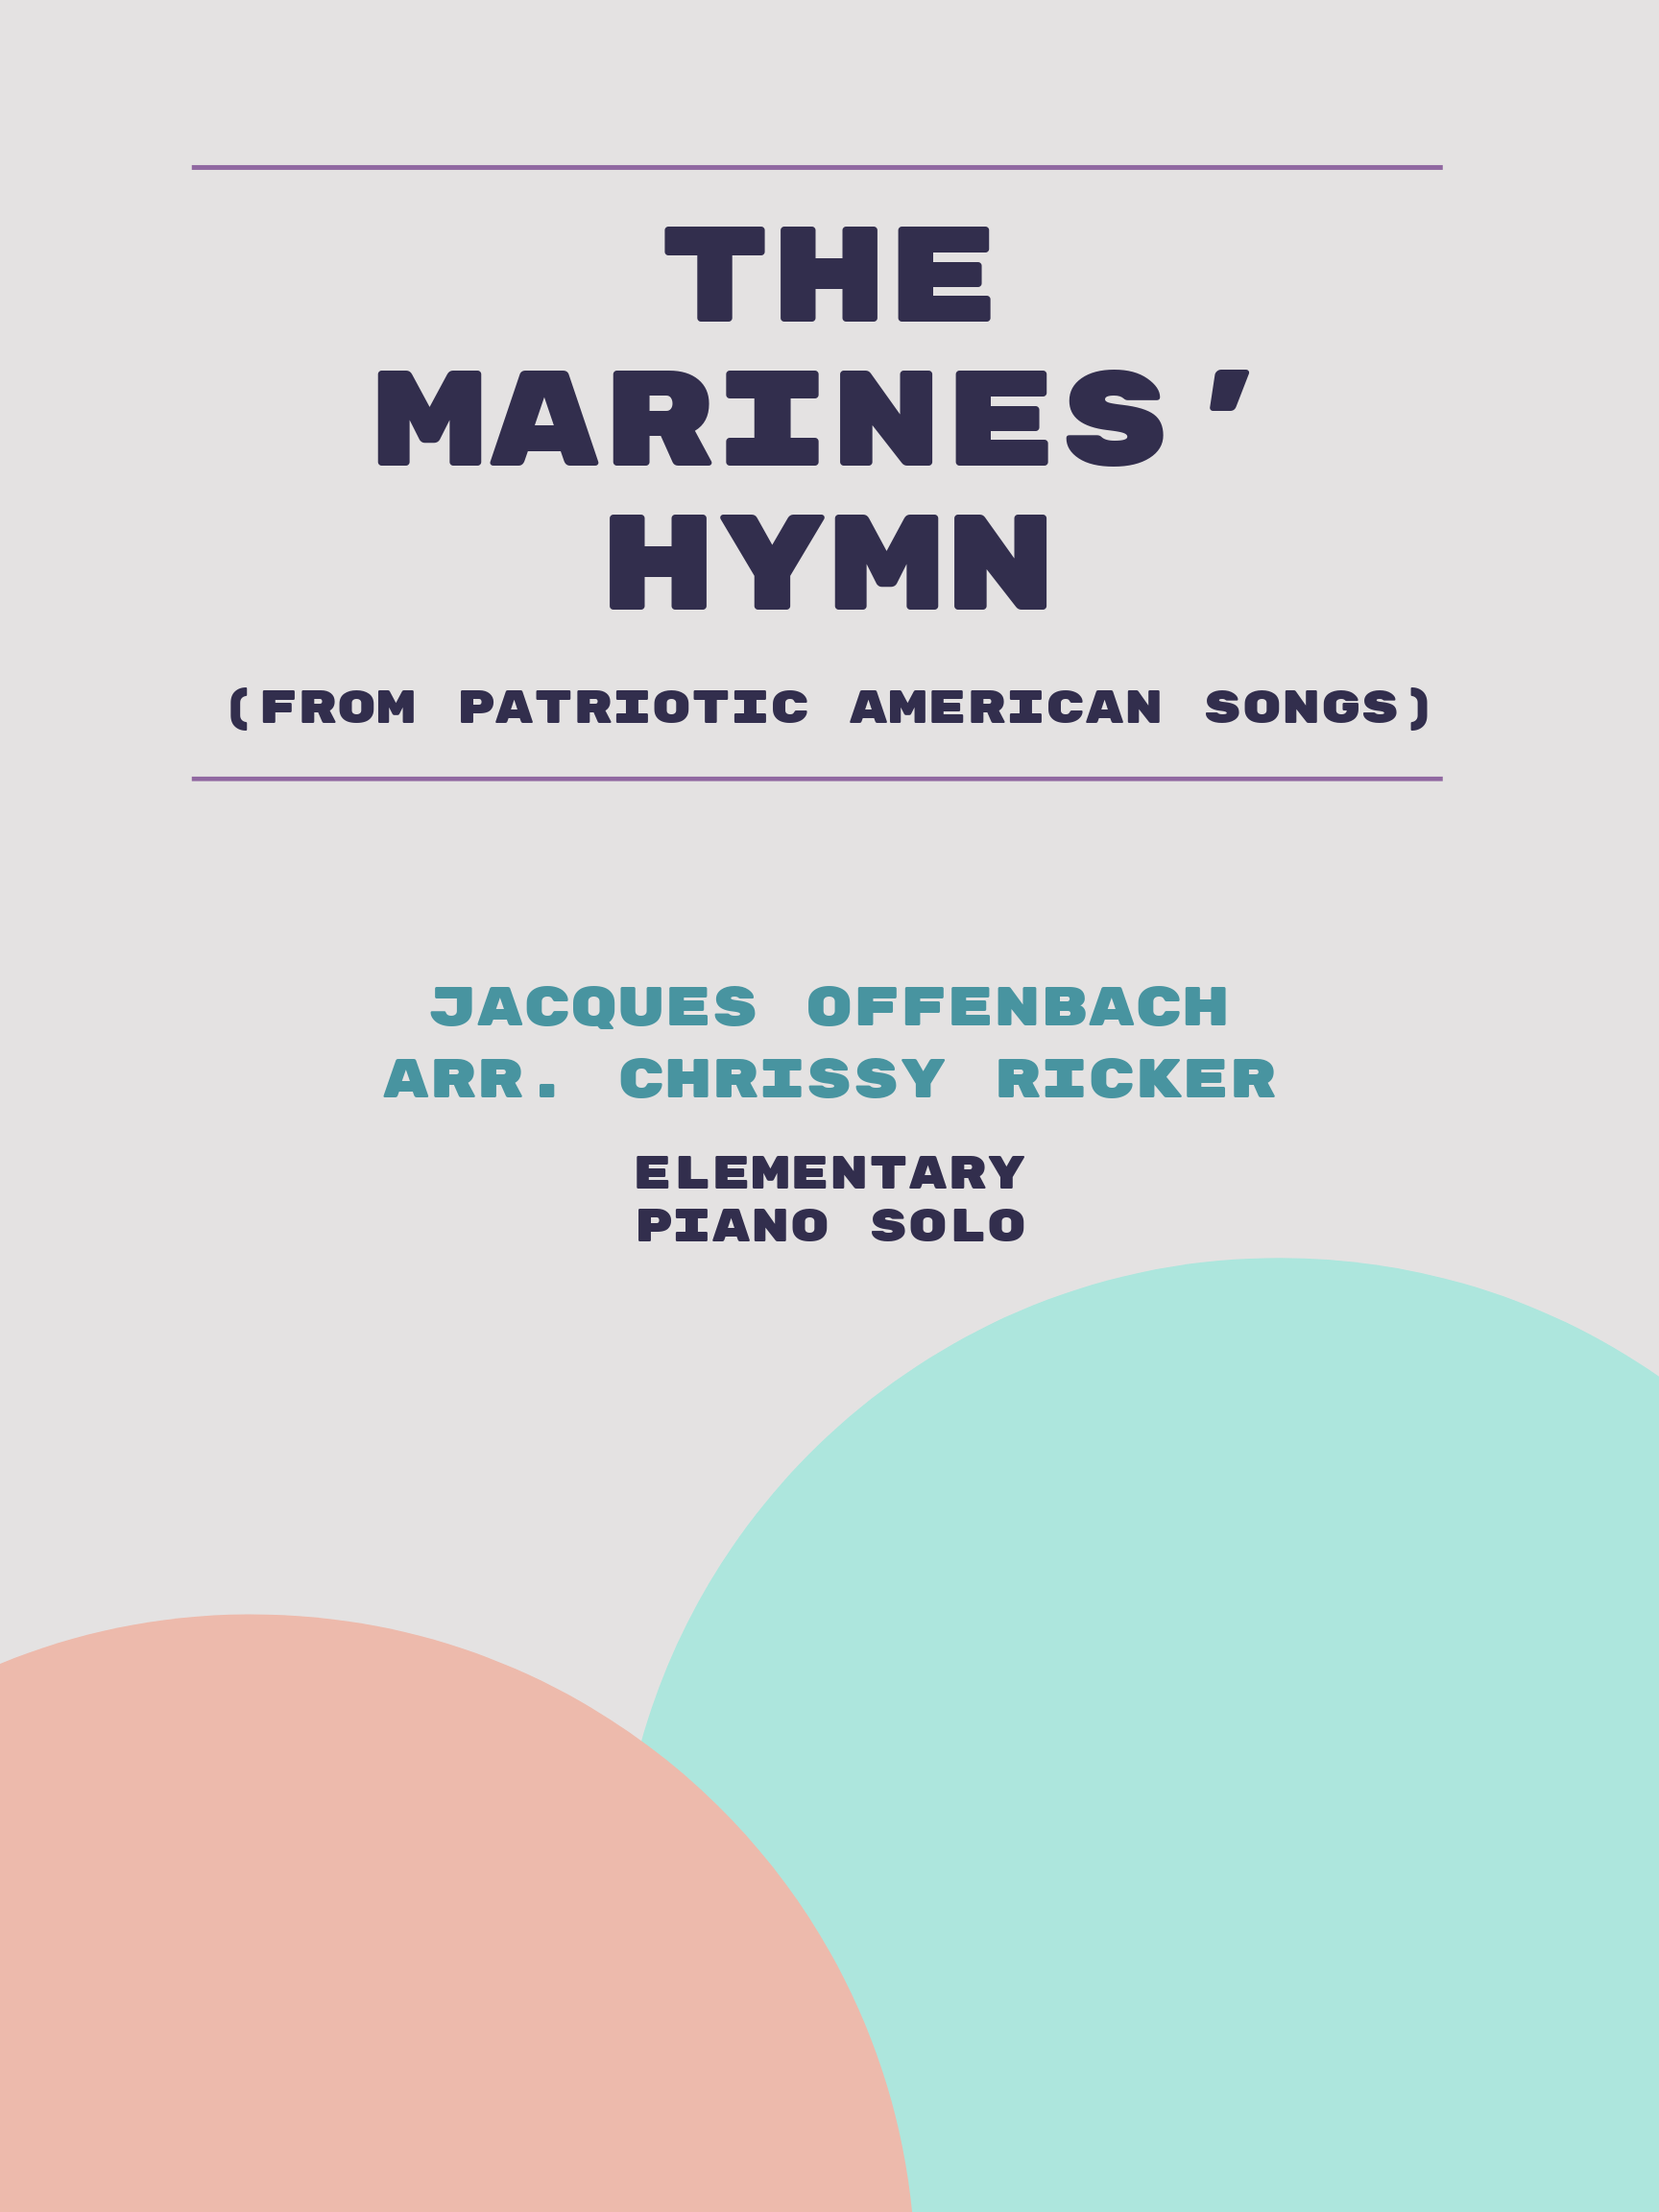 The Marines' Hymn by Jacques Offenbach